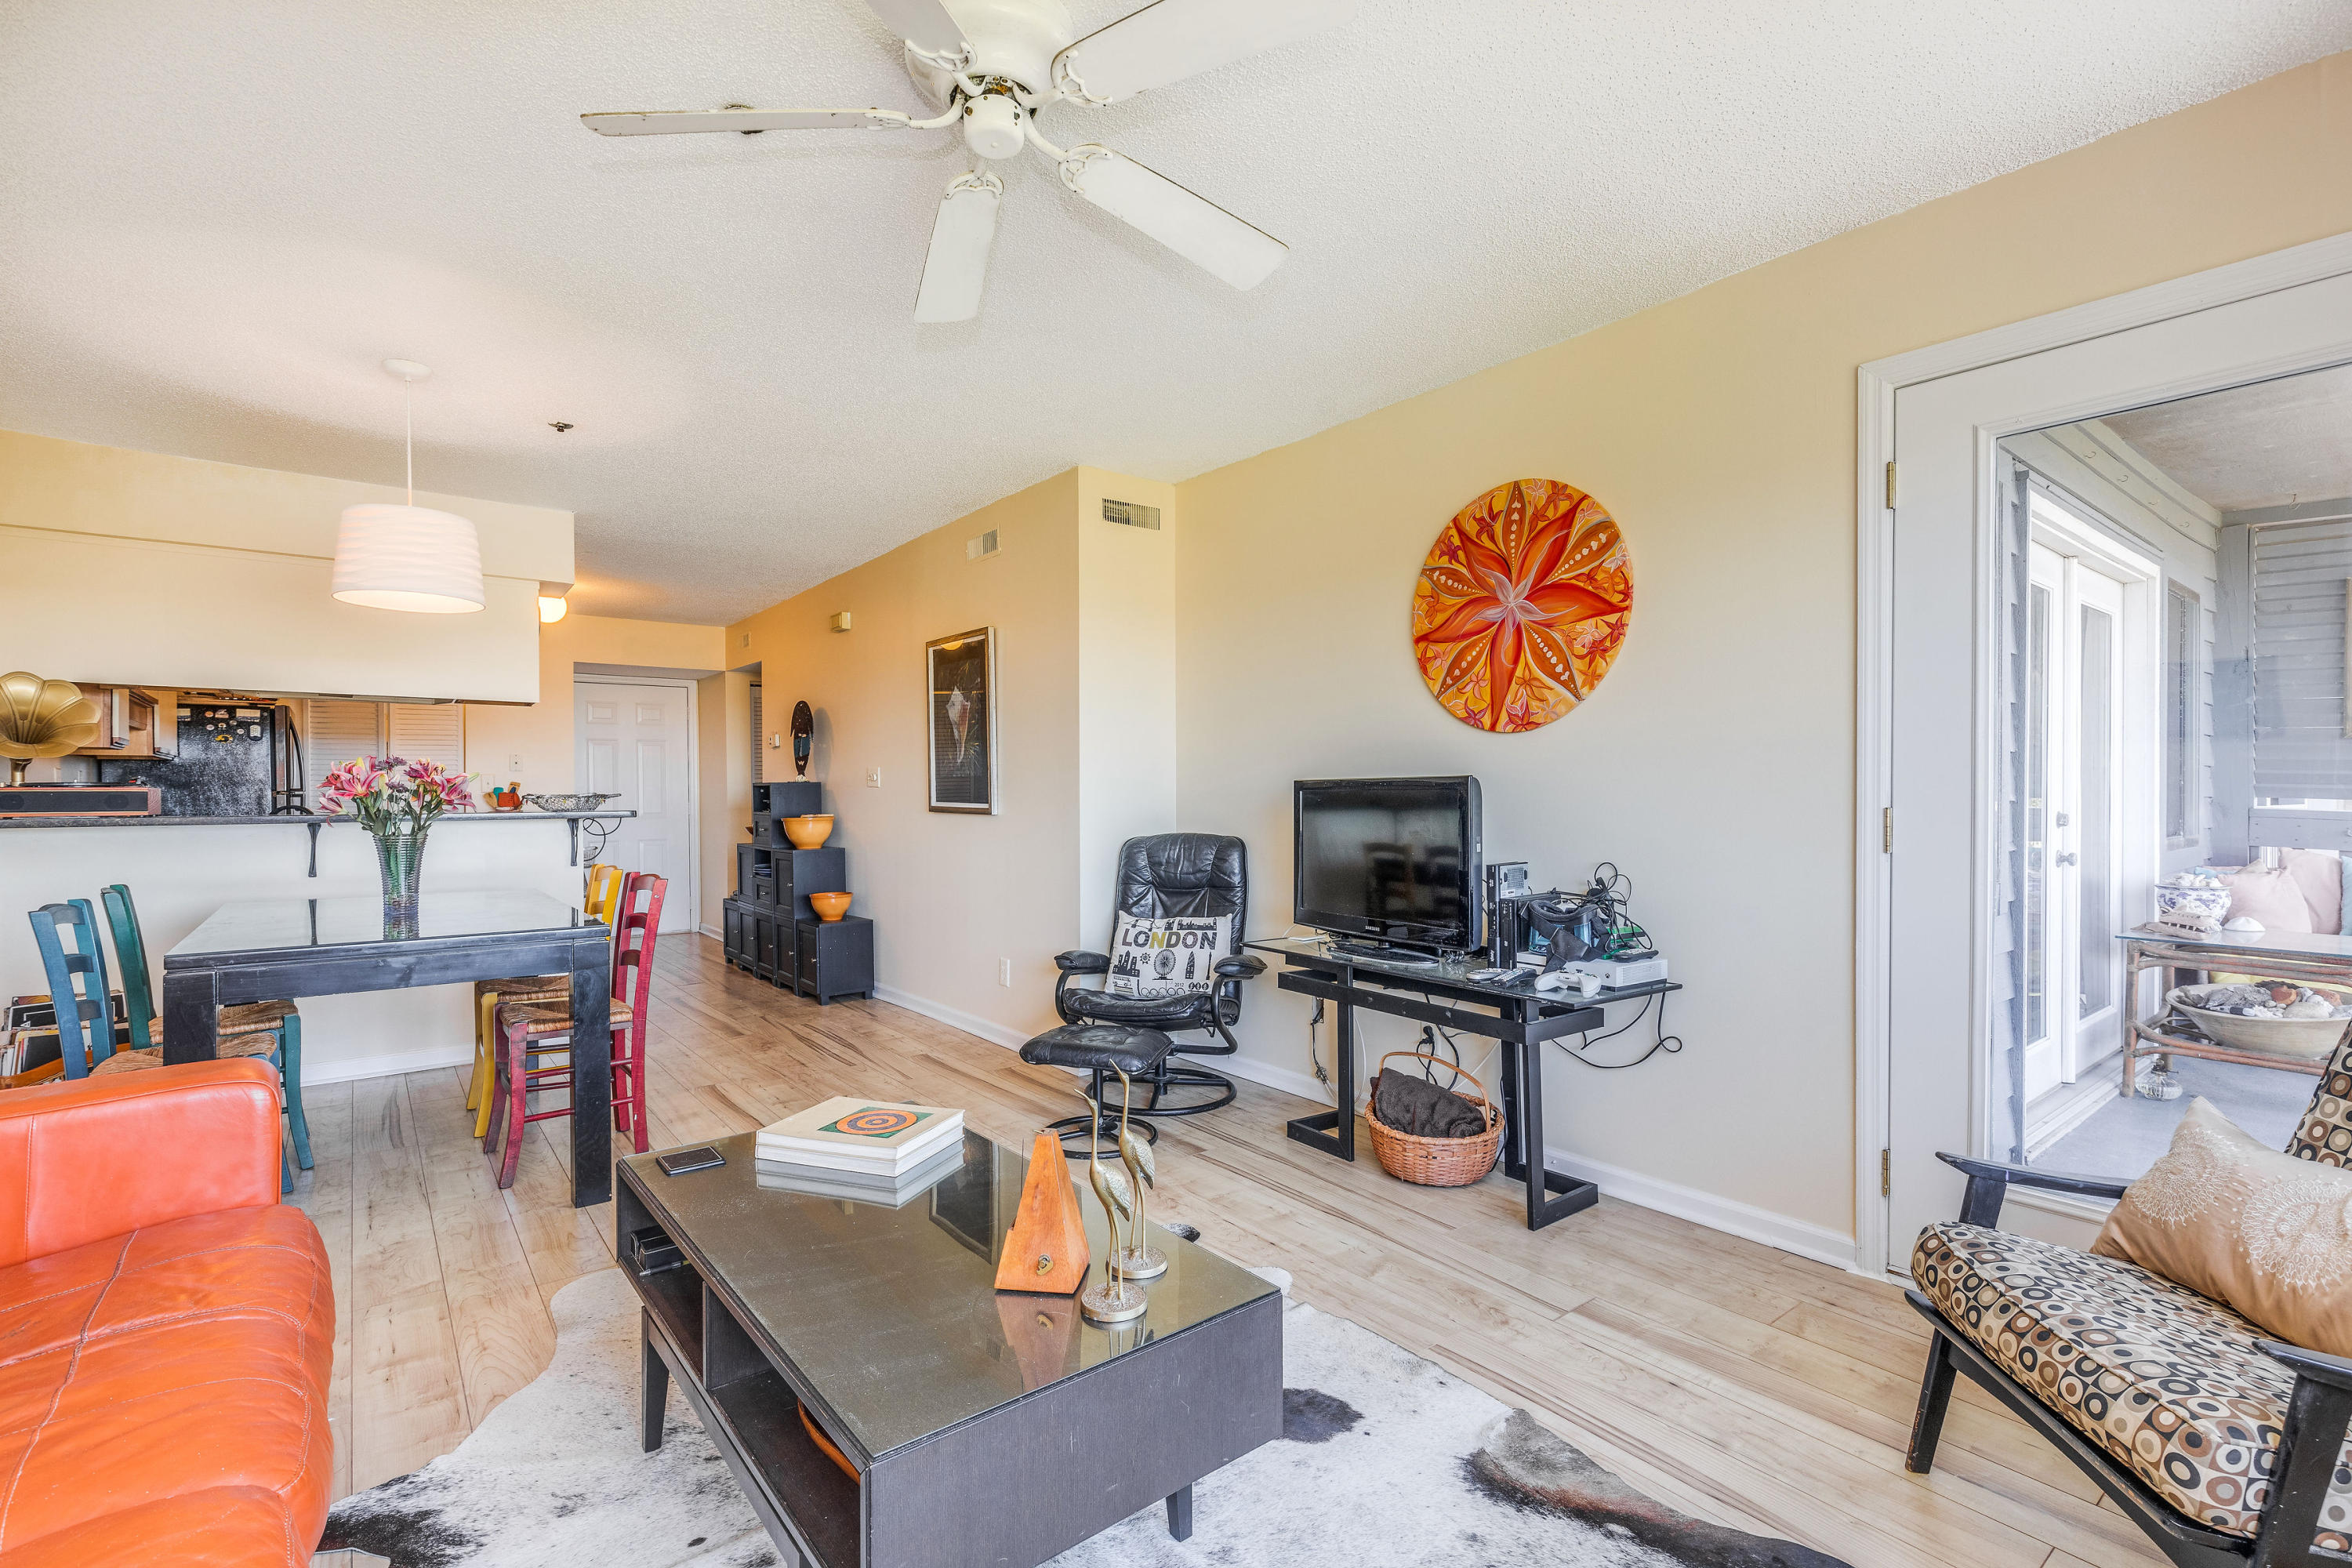 Mariners Cay Homes For Sale - 129 Marsh View Villas, Folly Beach, SC - 16